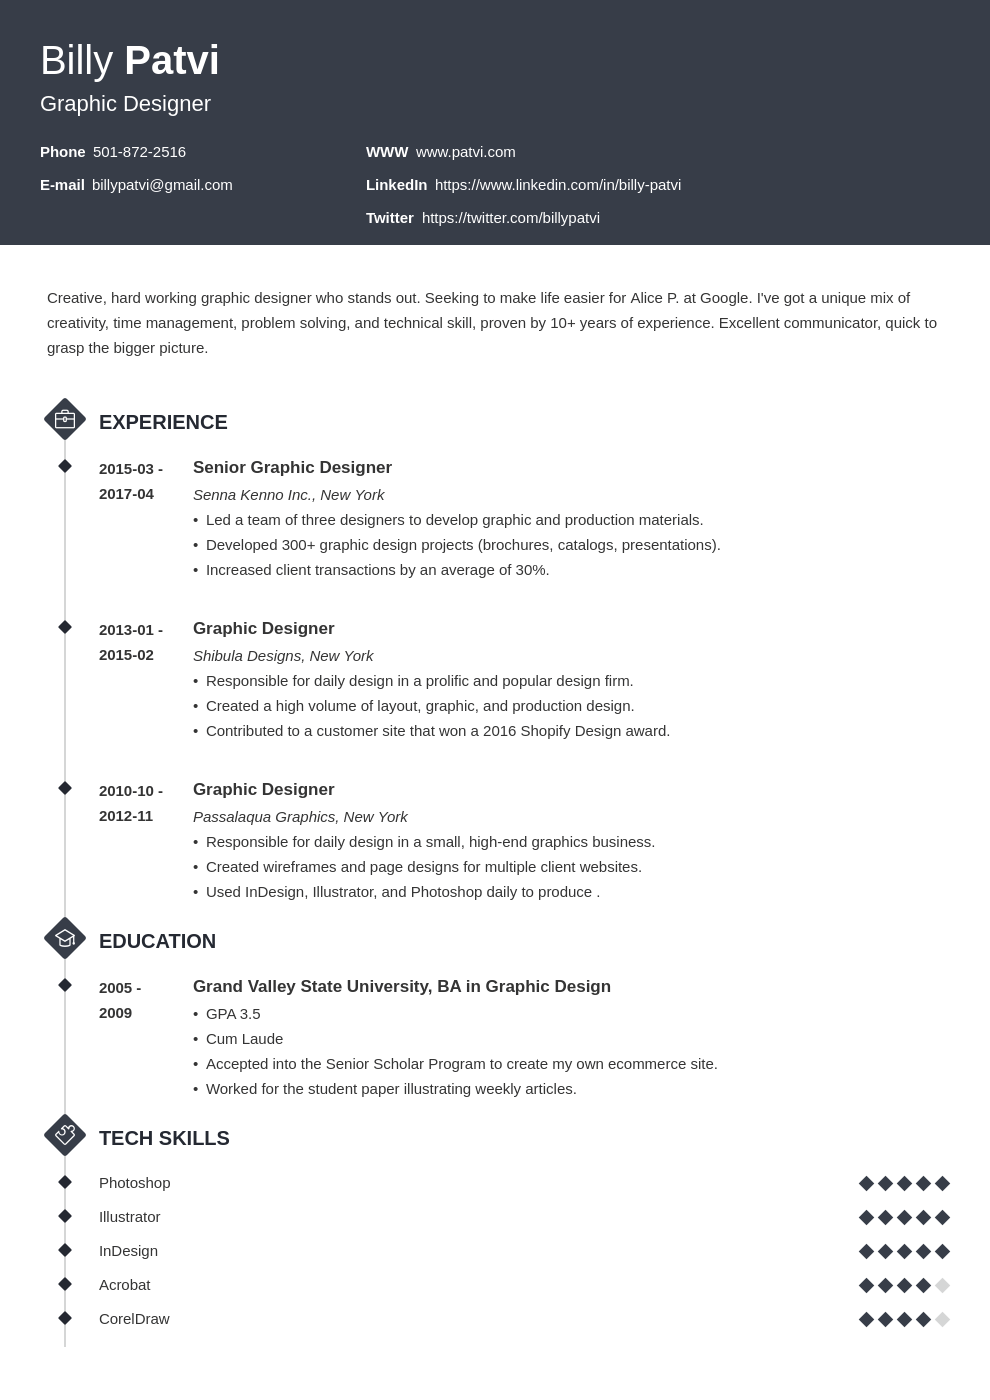 Graphic Designer Resume Examples 2020 (Template & Guide)